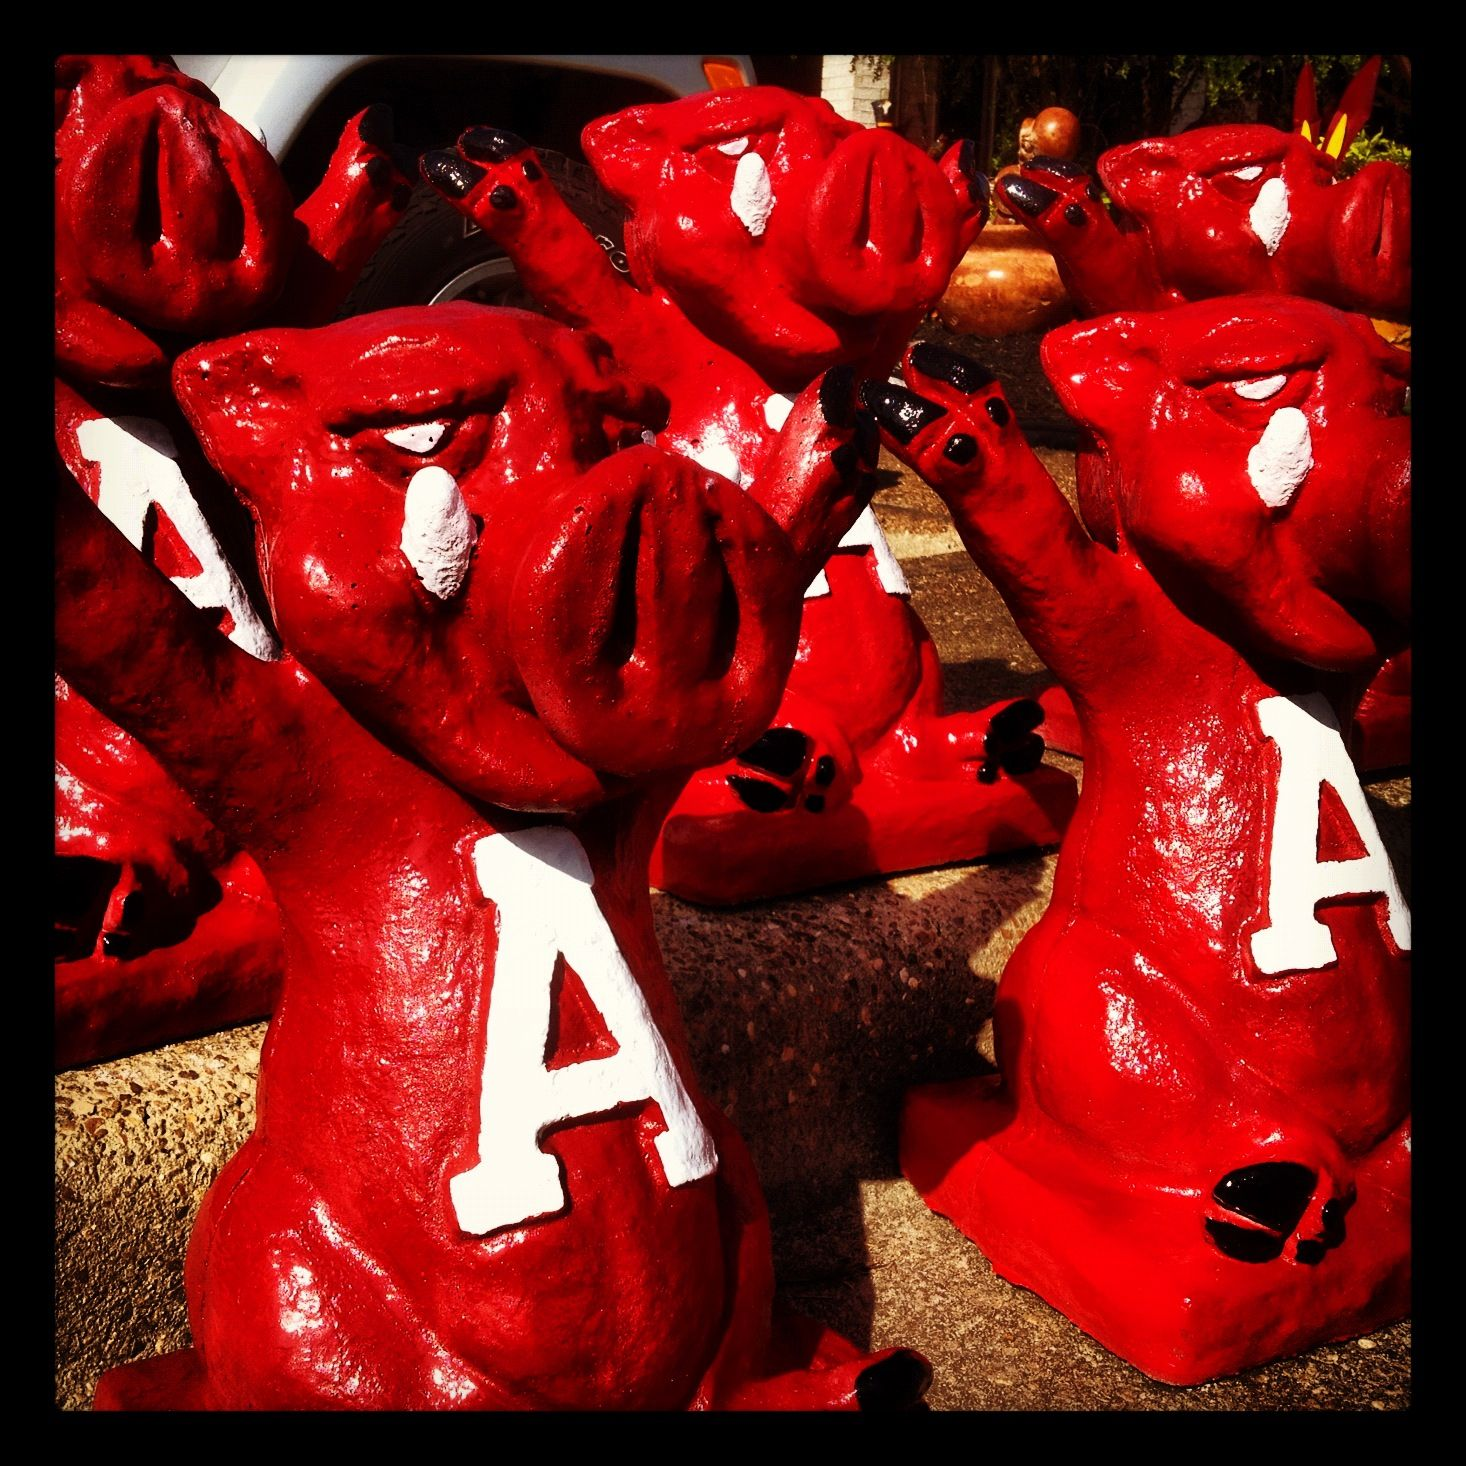 Concrete Touchdown Hogs At The Pottery Shop Arkansas Razorbacks Razorbacks Arkansas Football